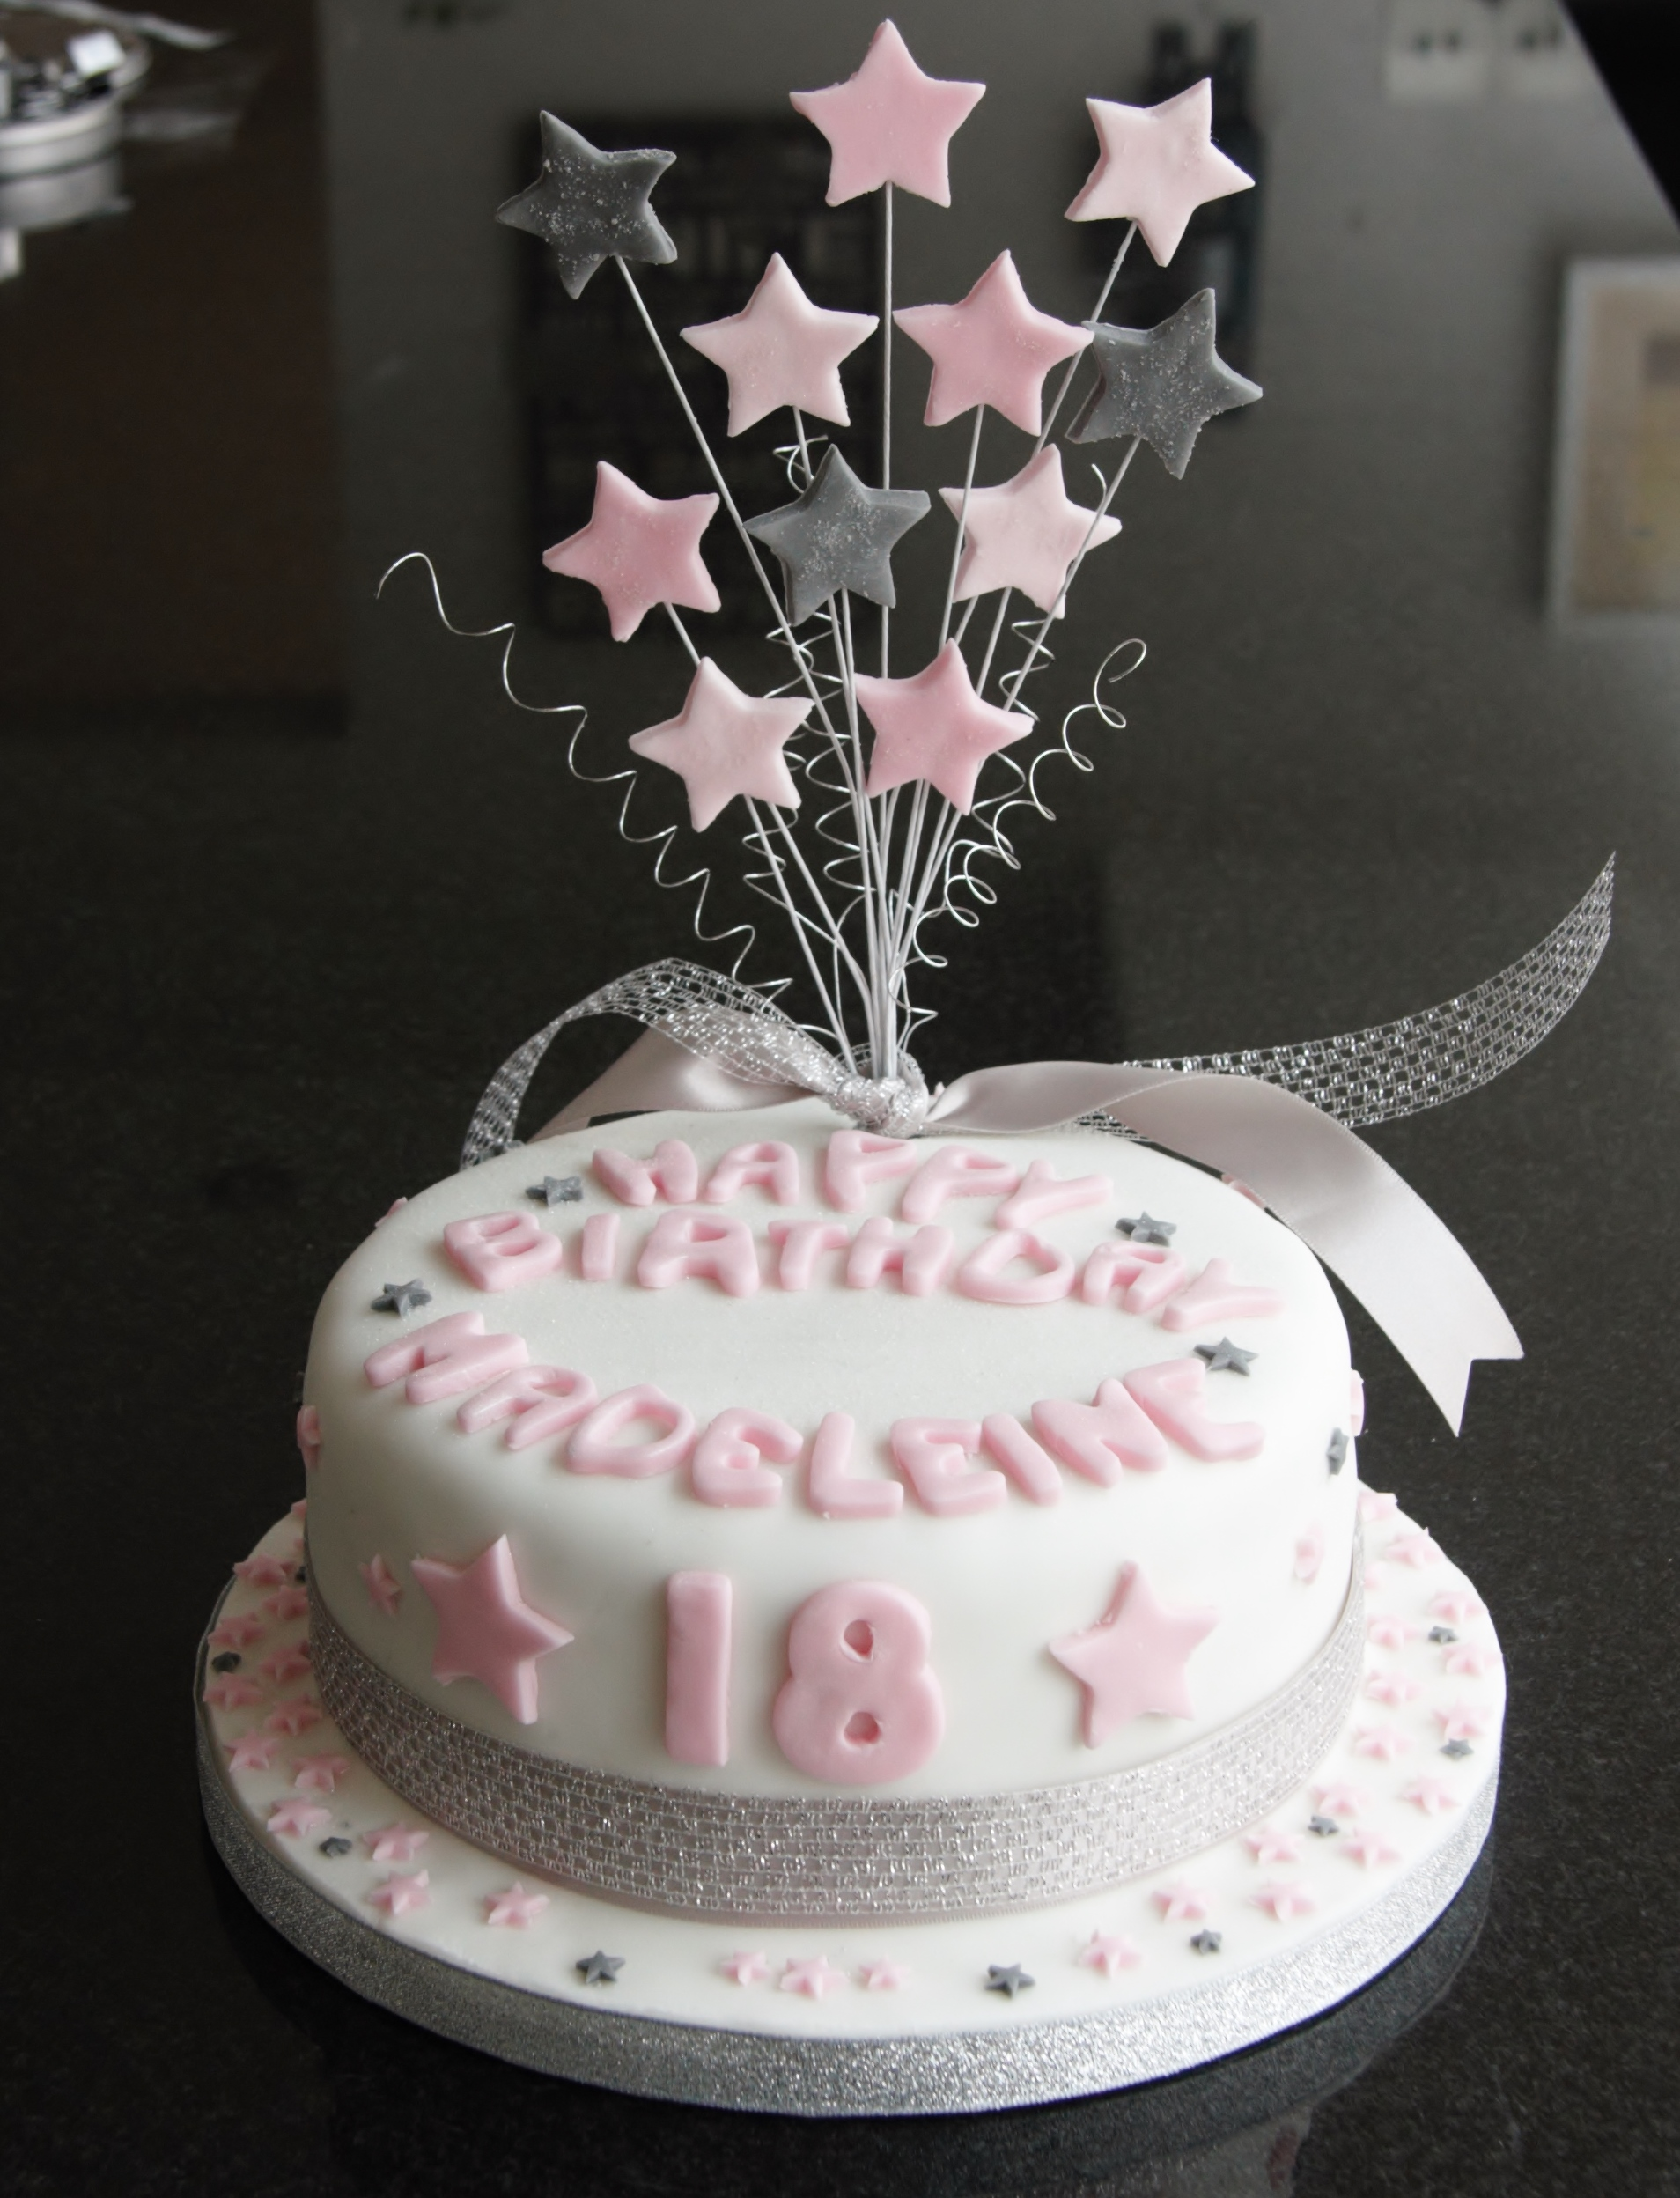 Stupendous 18Th Birthday Star Cake And Cupcakes Lovinghomemade Personalised Birthday Cards Veneteletsinfo